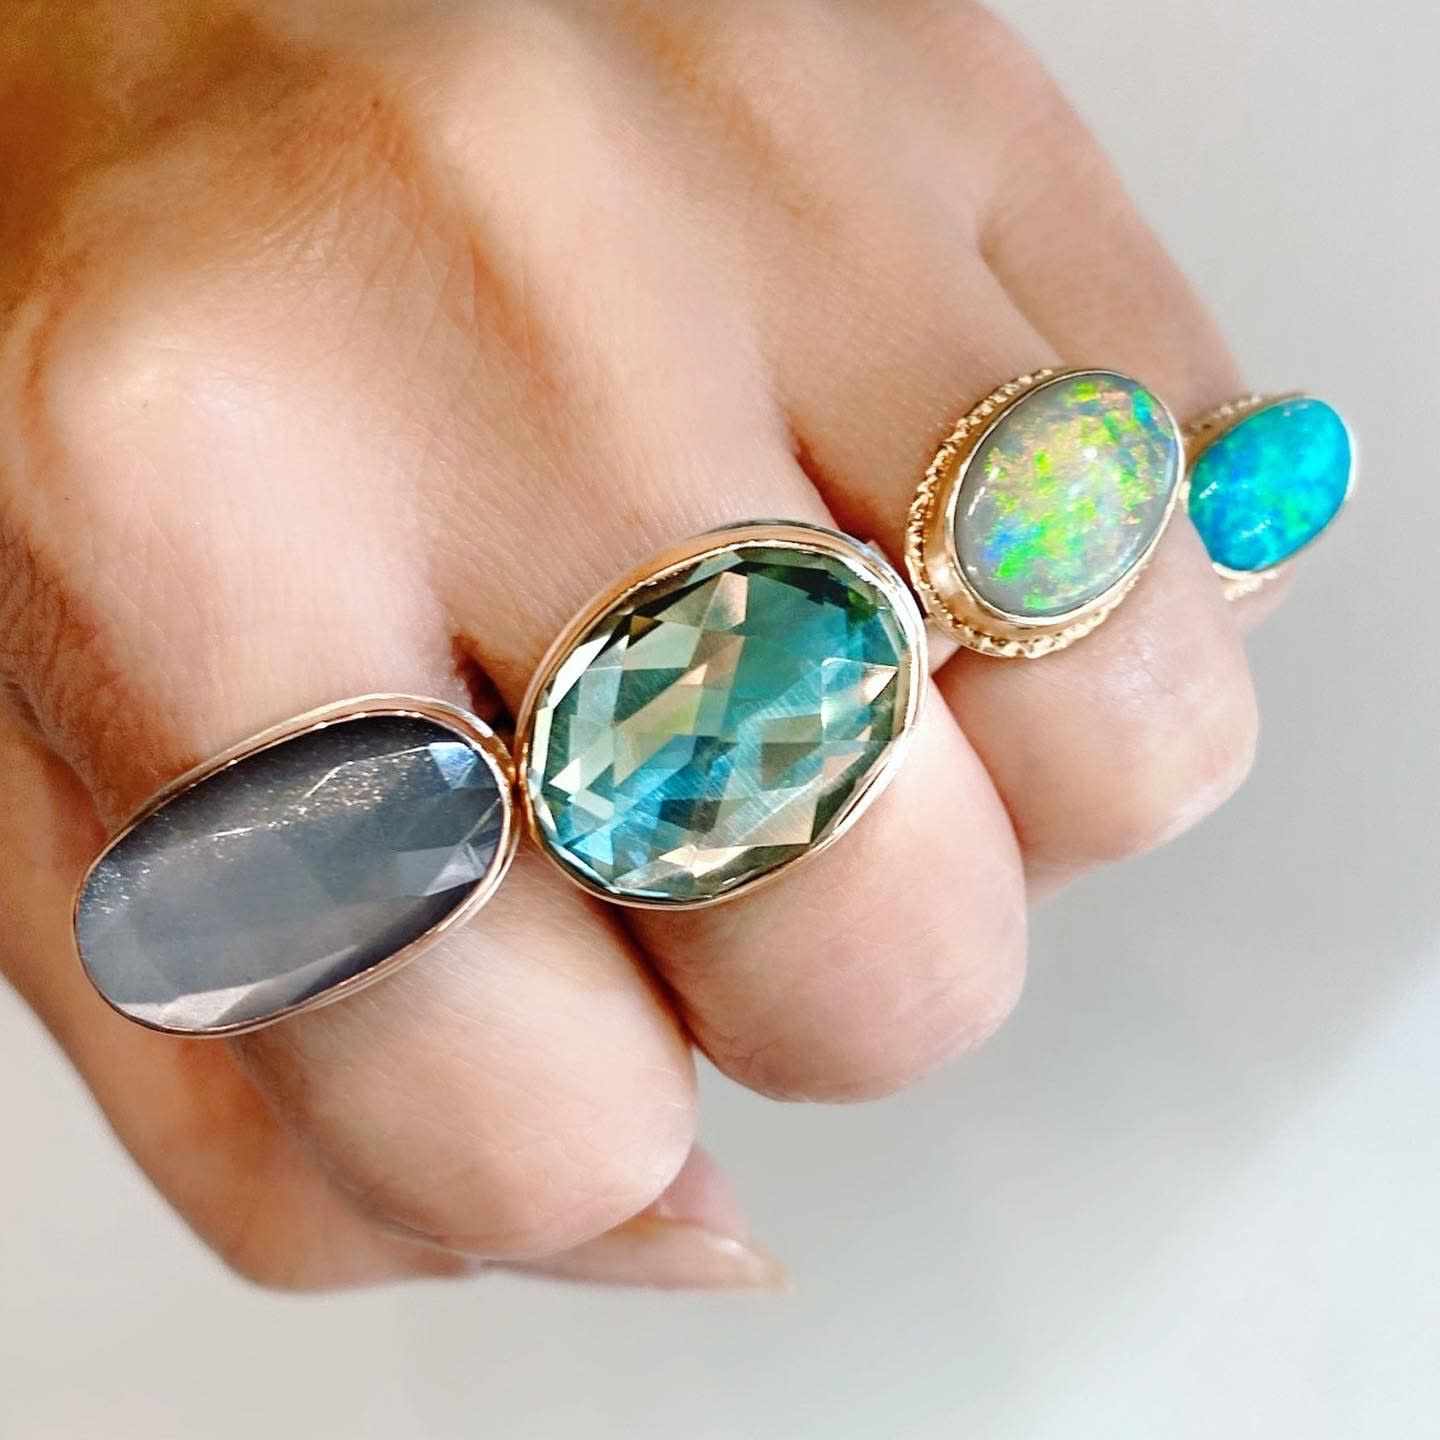 Jamie Joseph Jewelry Designs Oval Australian Black Opal Bezel Ring